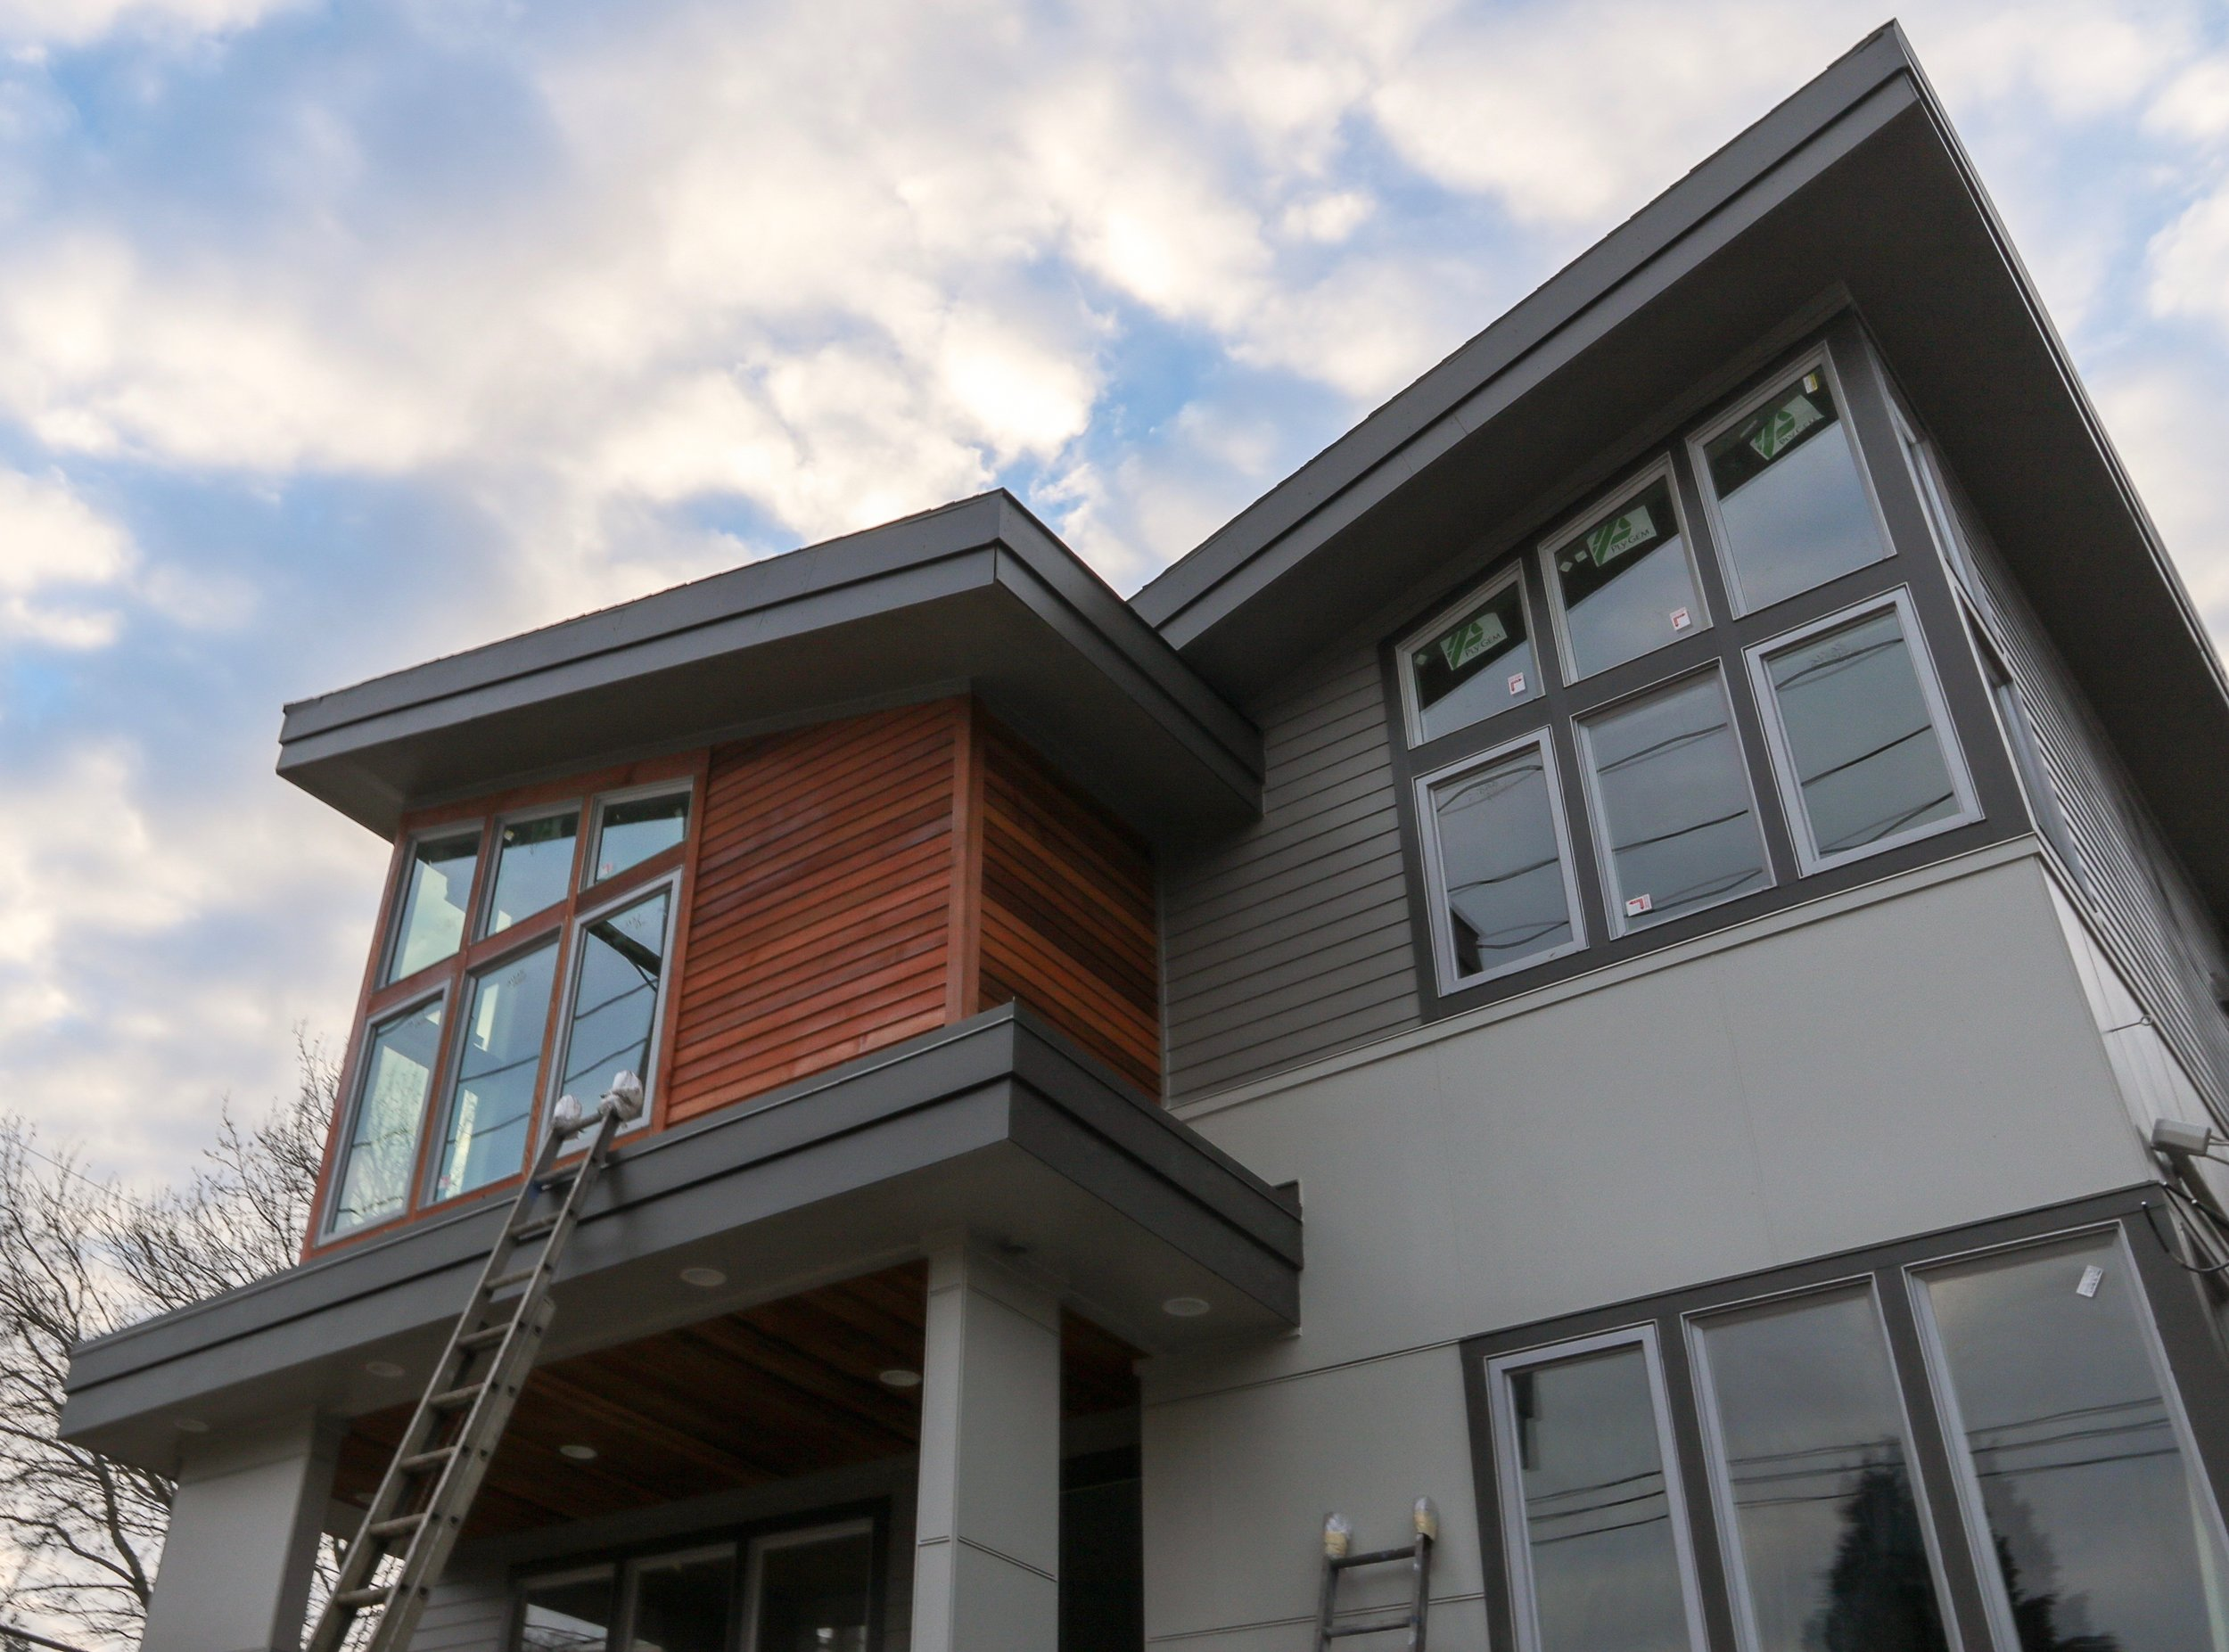 Two contemporary Style Homes in Milwaukie